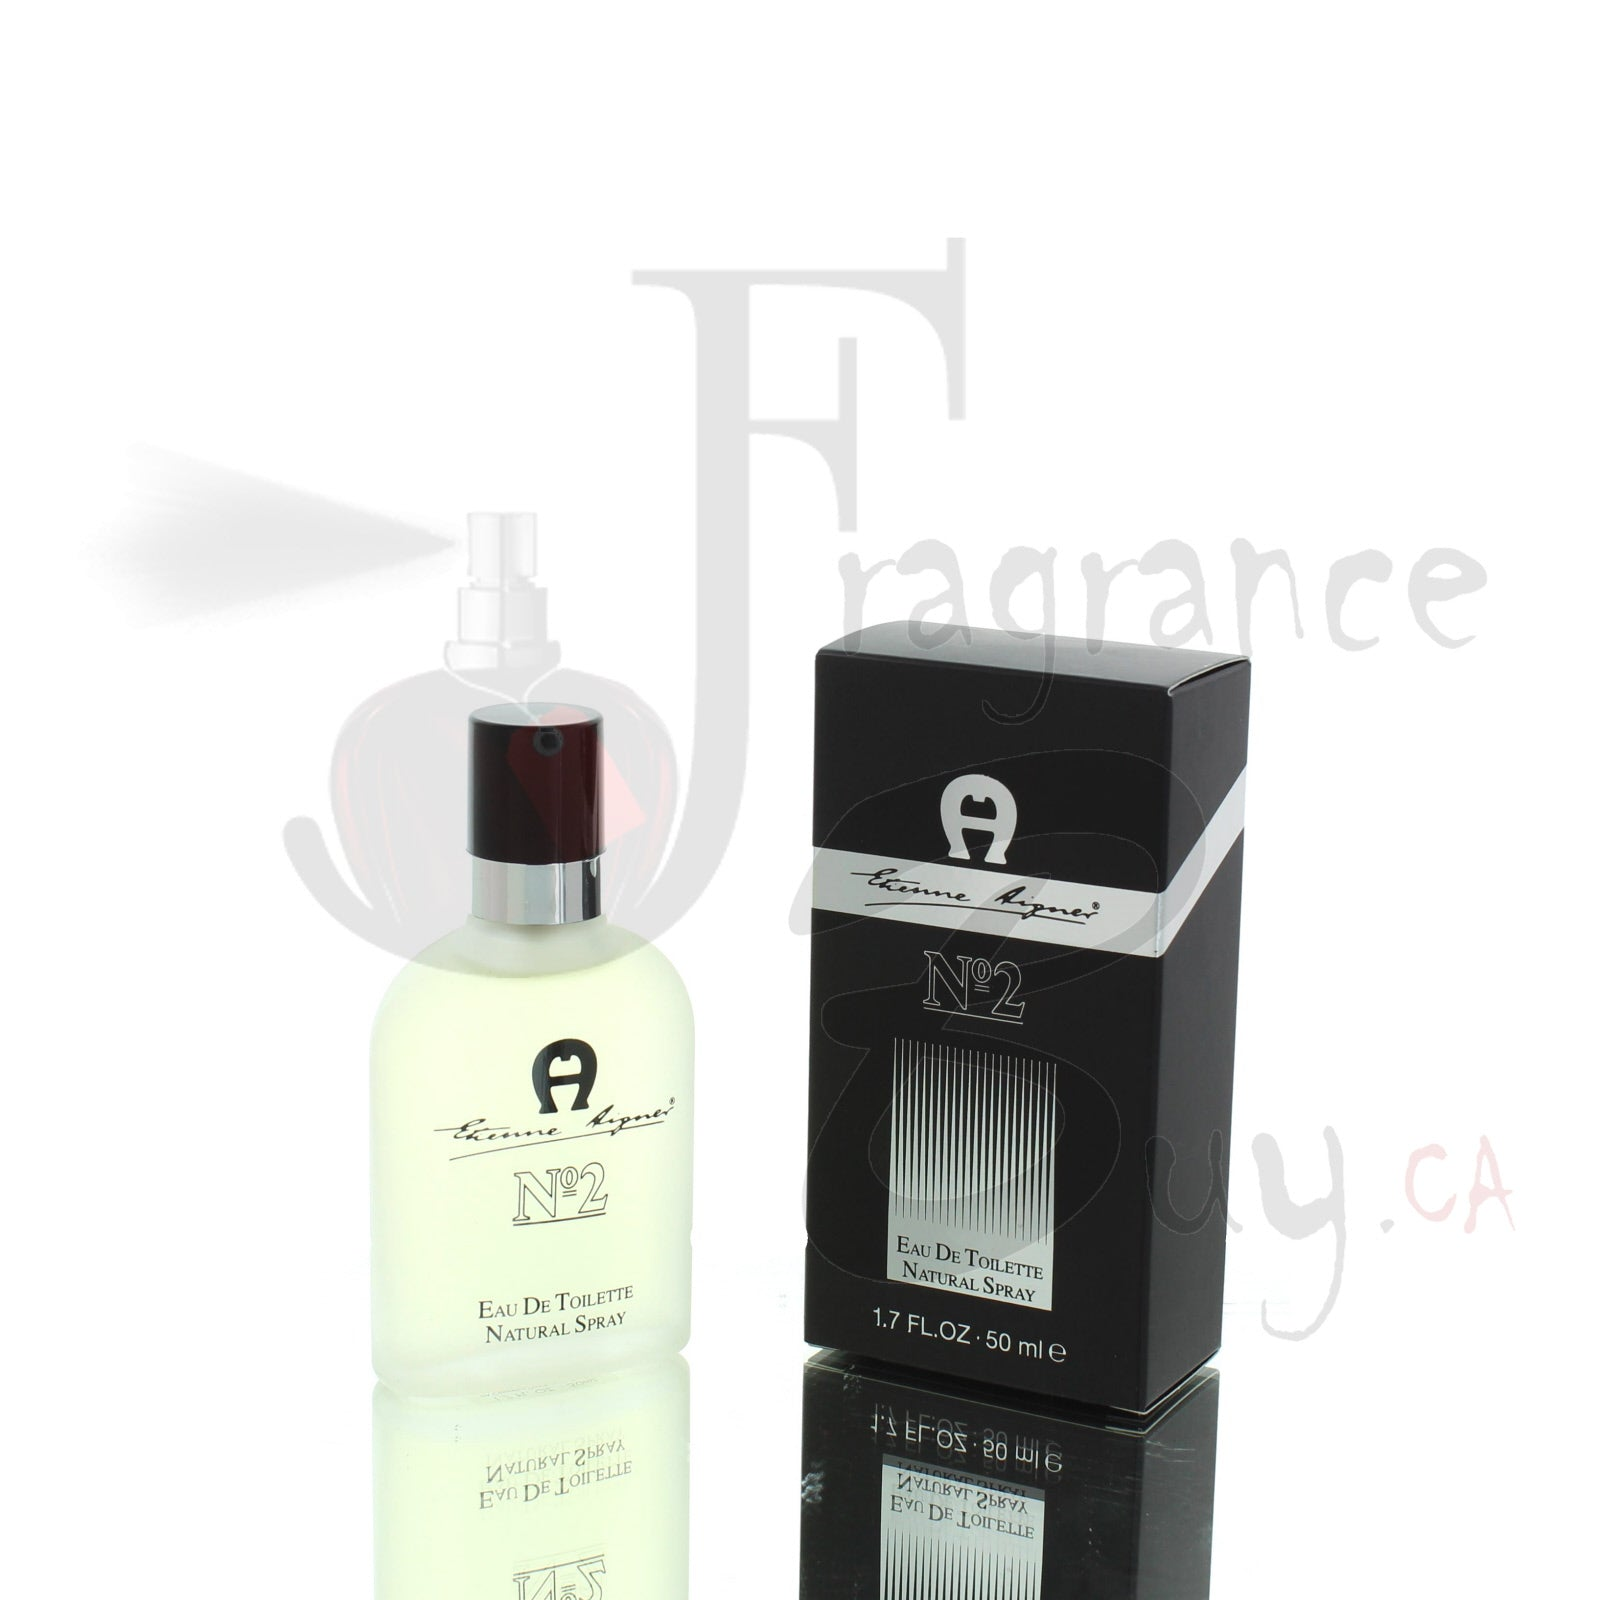 Etienne Aigner Aigner No. 2 For Man/Woman